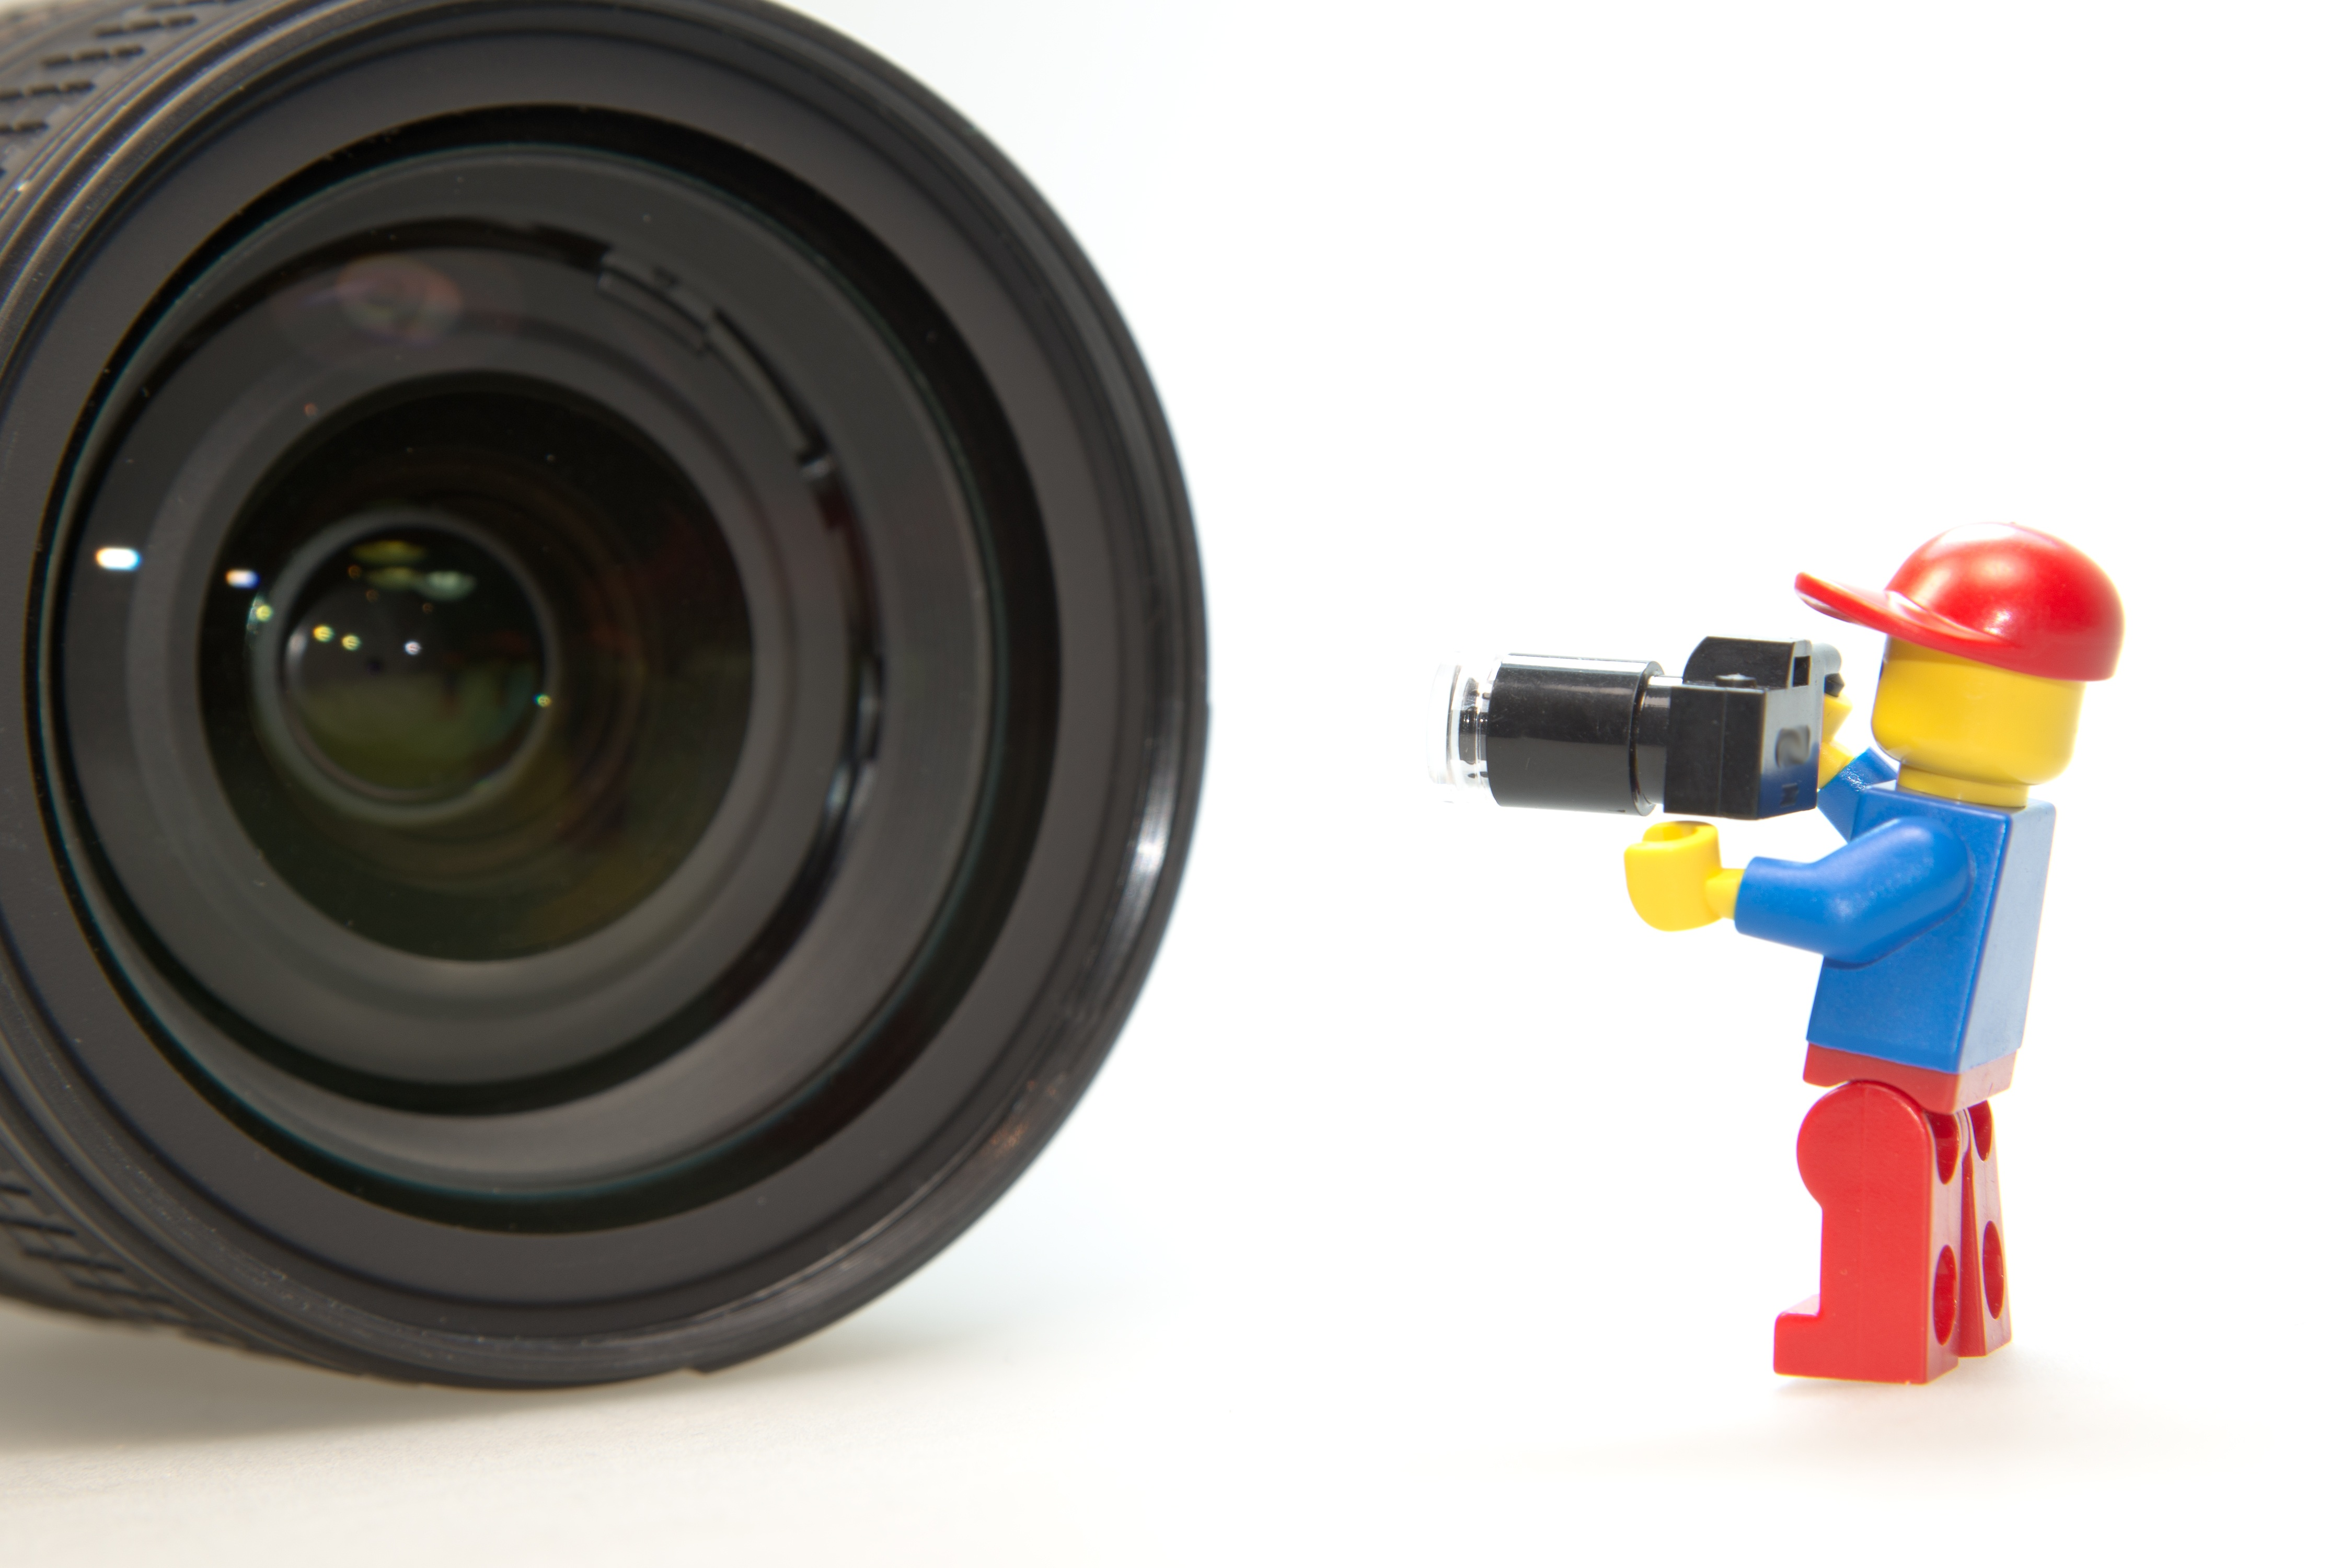 LEGO figure holding toy camera pointed at real camera lens